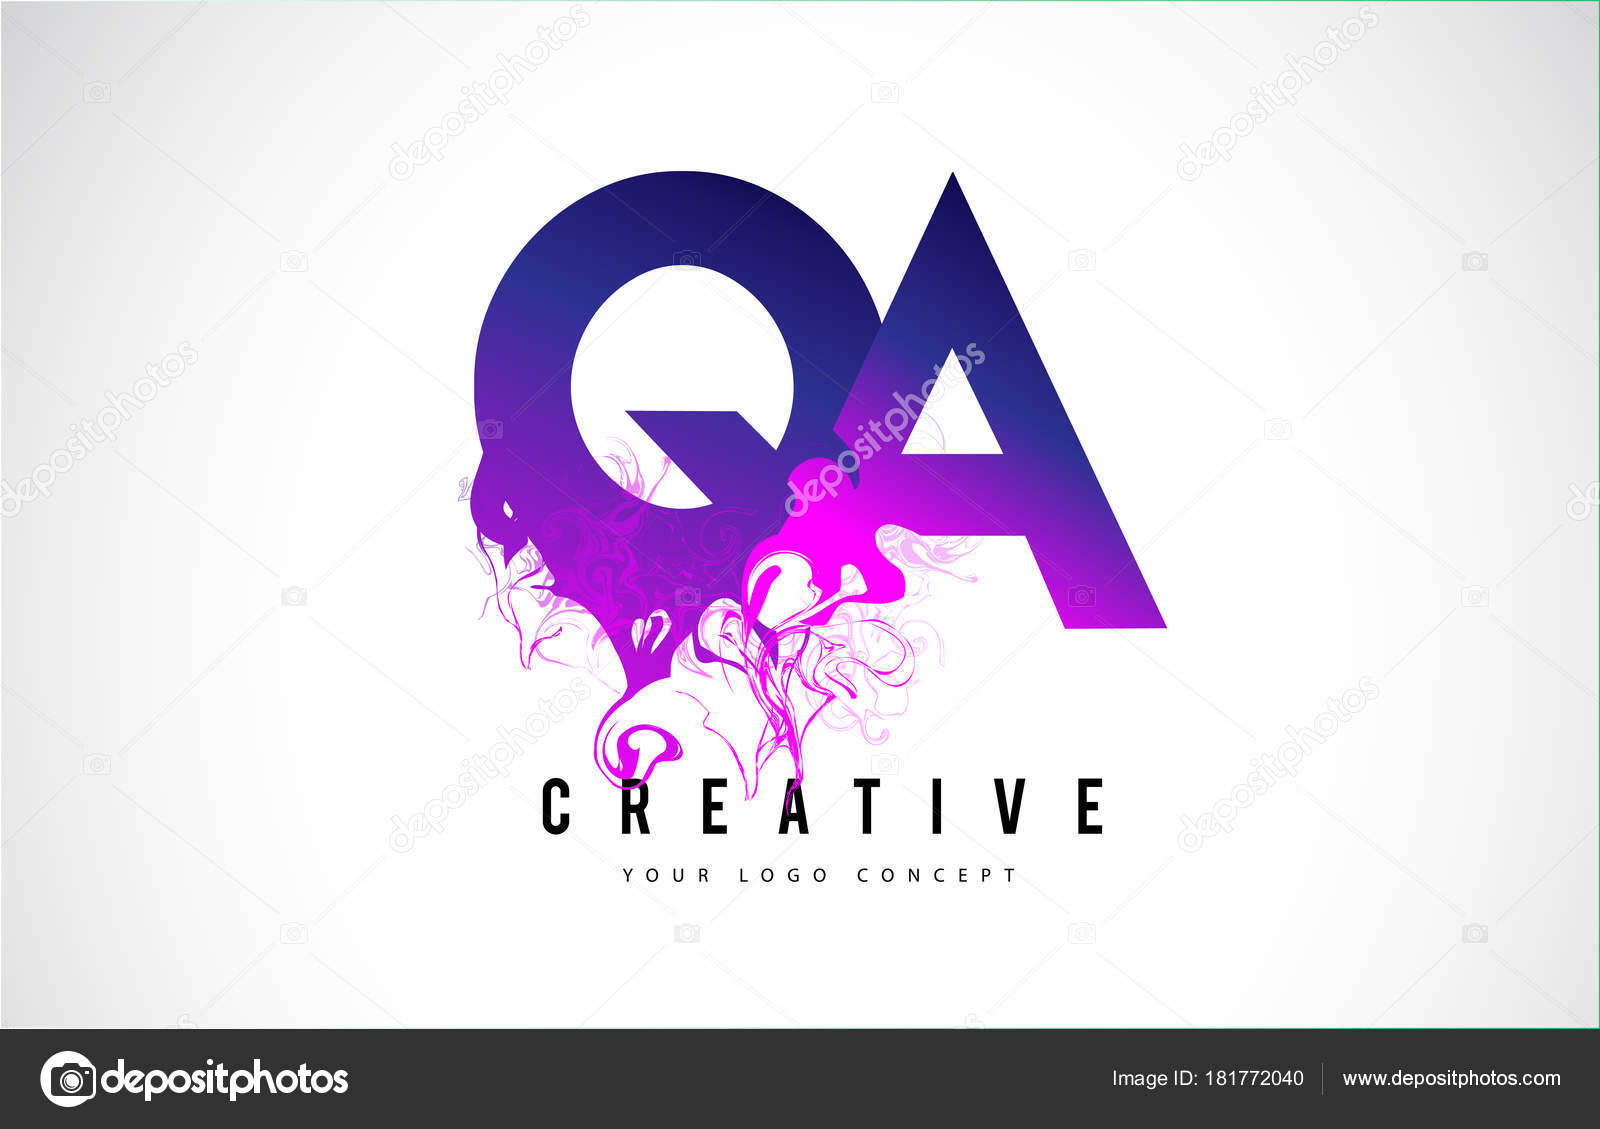 qa q a purple letter logo design with liquid effect flowing stock